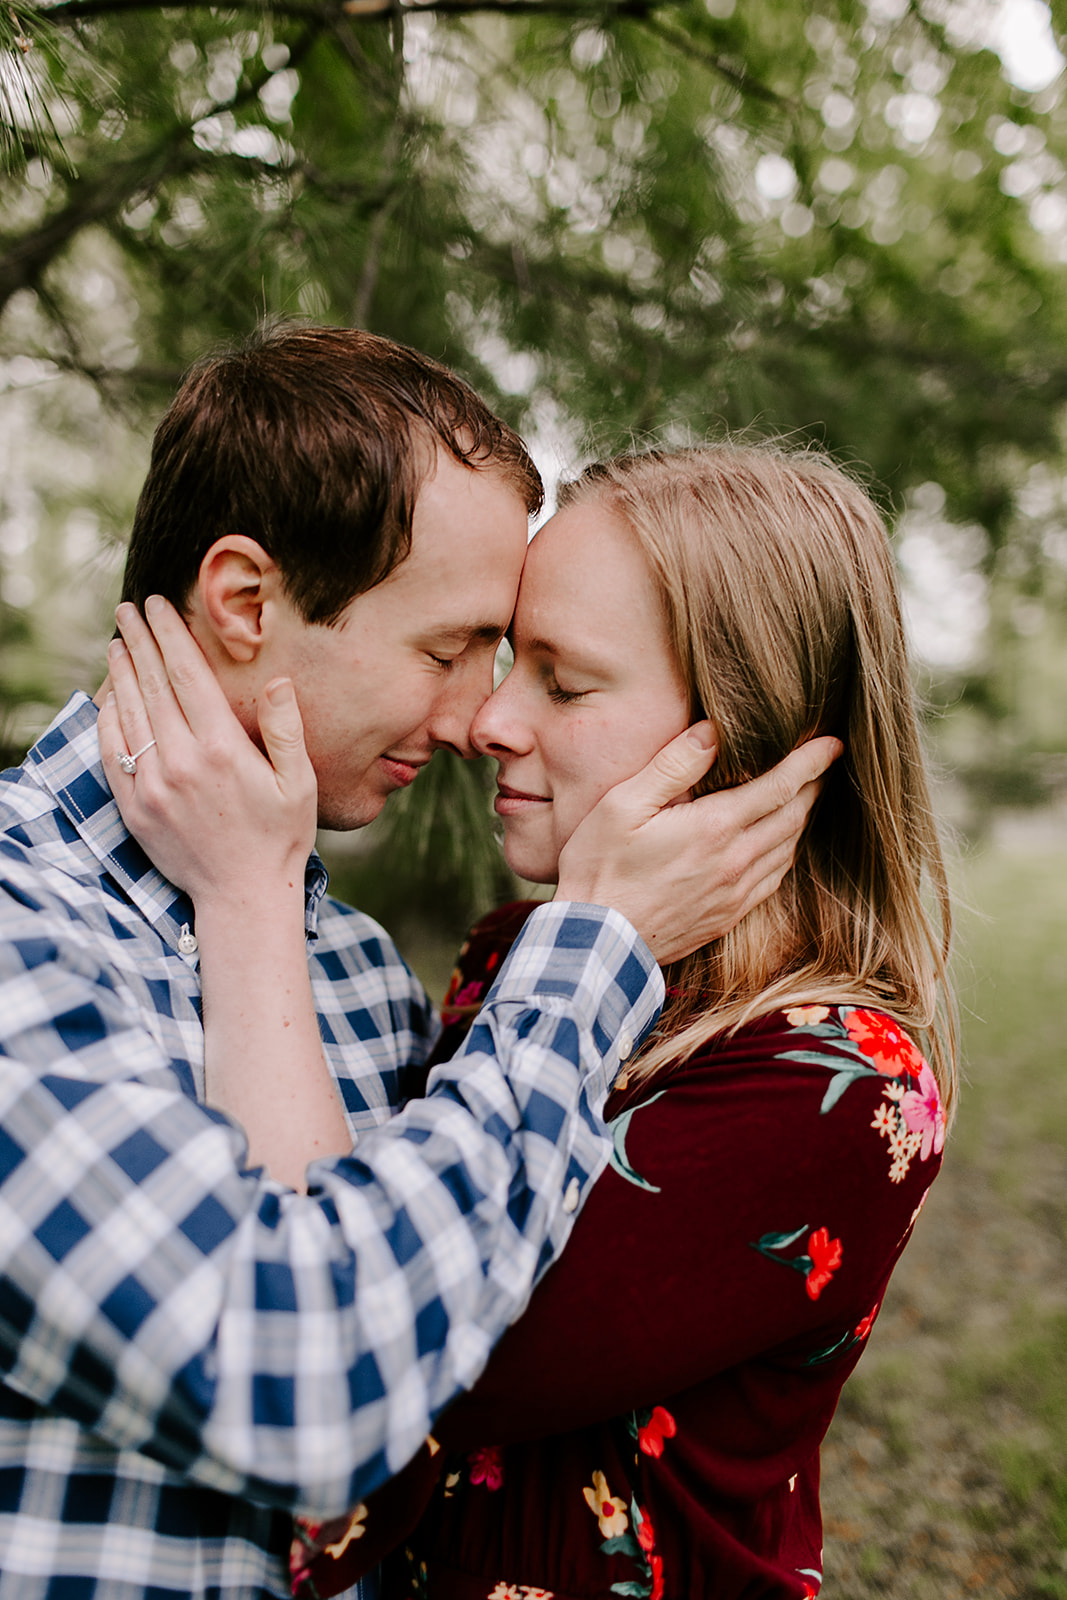 Rainy Noblesville Engagement Session including outfit ideas and posing inspiration | Photography by Emily Elyse Wehner, Noblesville Engagement photographer